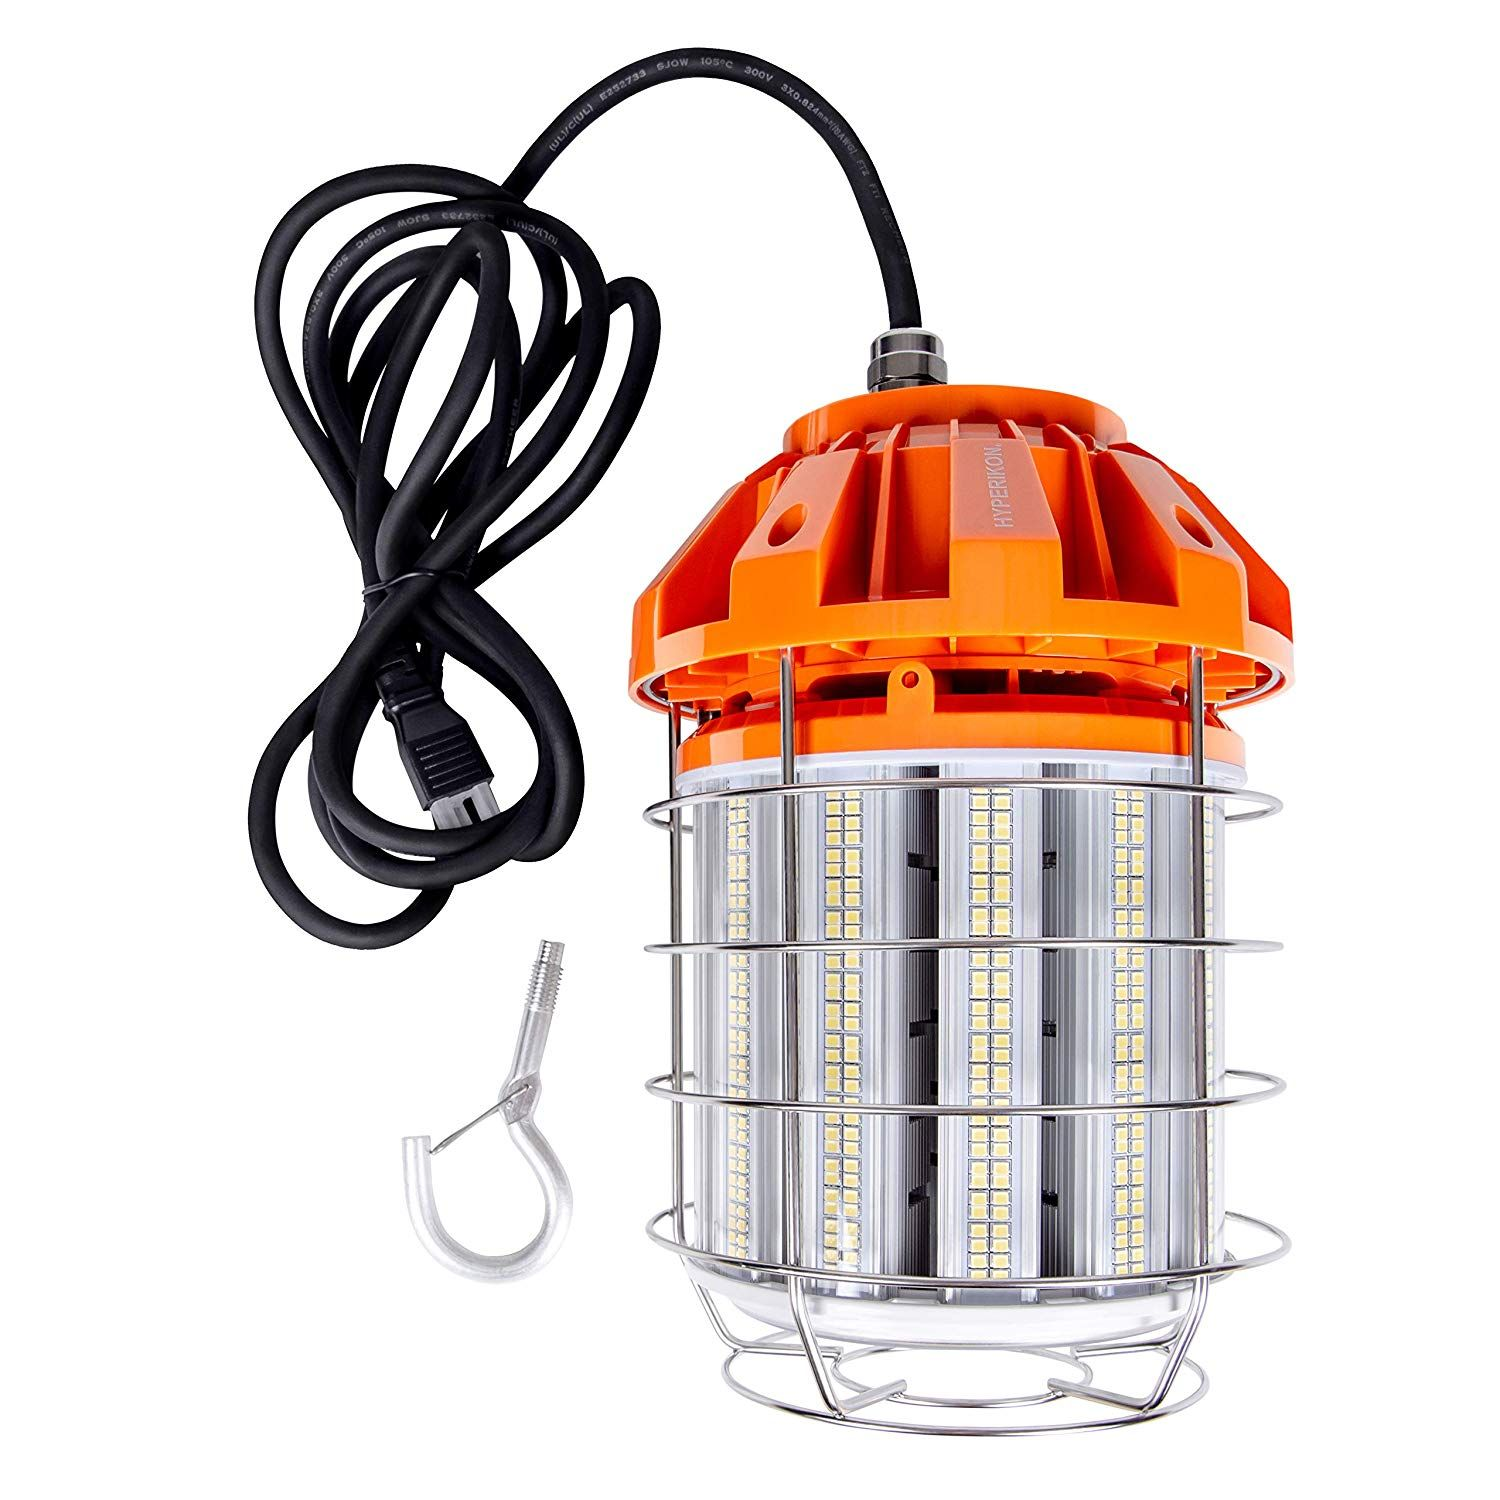 Hyperikon 125w Led Temporary Work Light Hanging For Construction Workshop Jobsite Corded Portable Led Work Light Fix Led Work Light Work Lights Led Drop Light